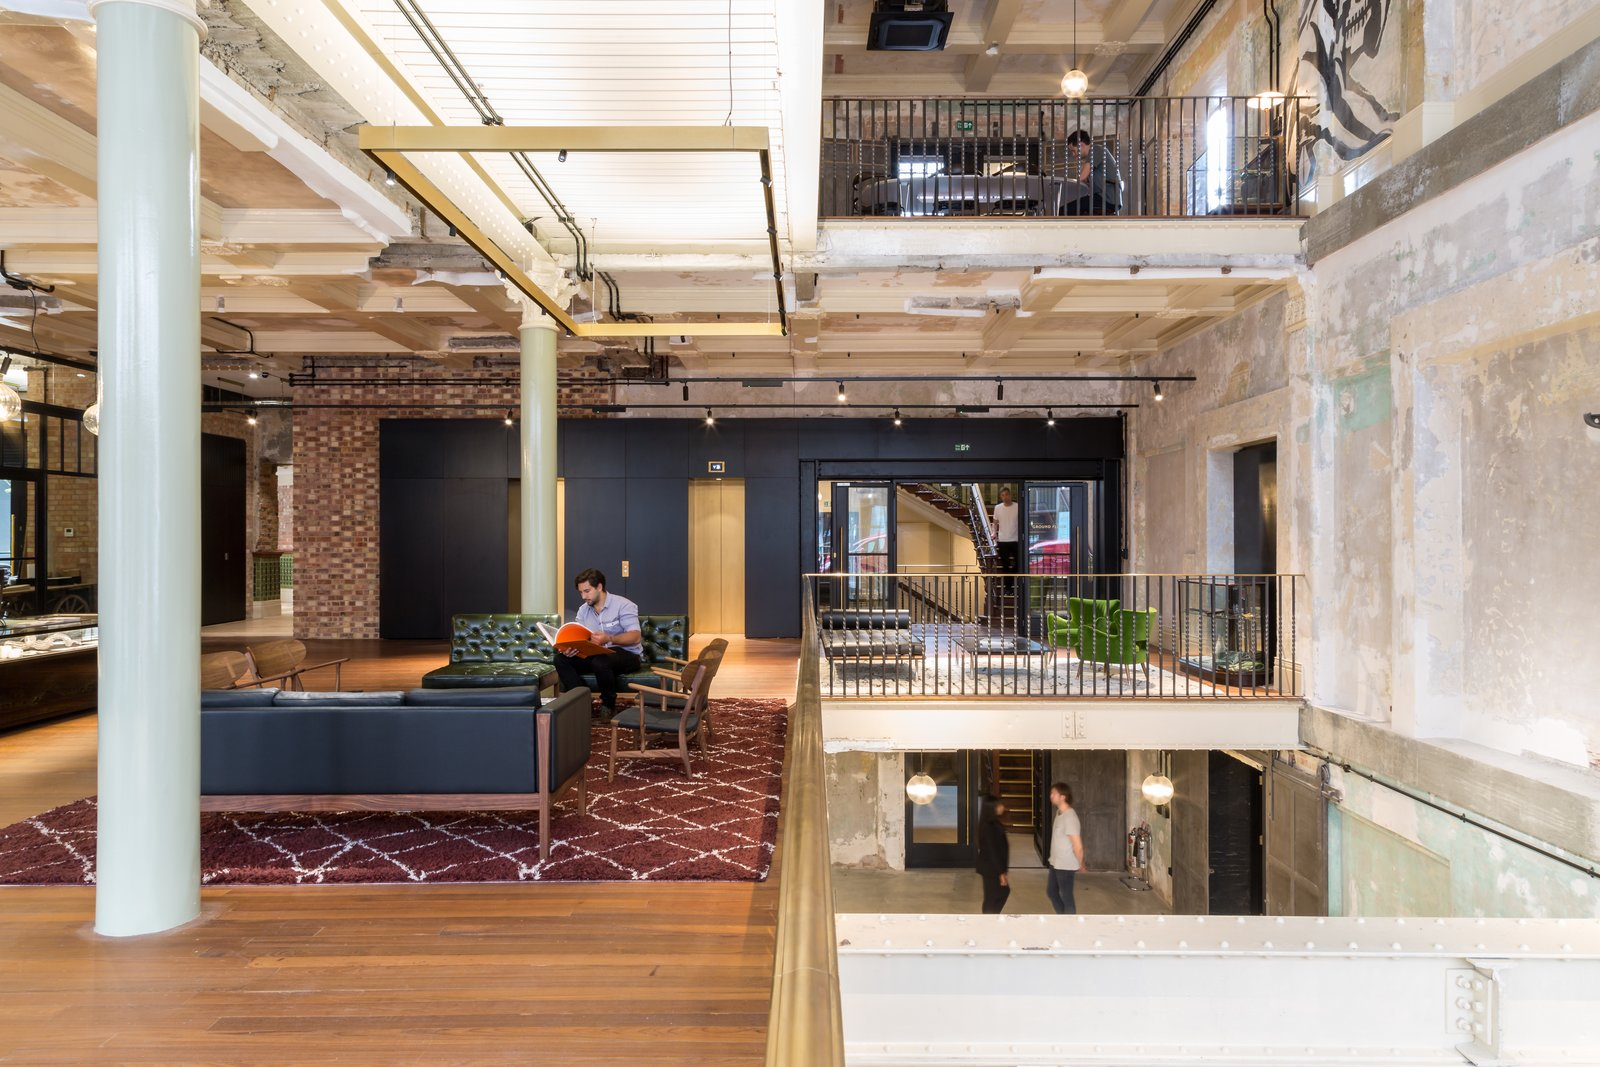 A London Department Store Is Reborn as a Creative Workspace